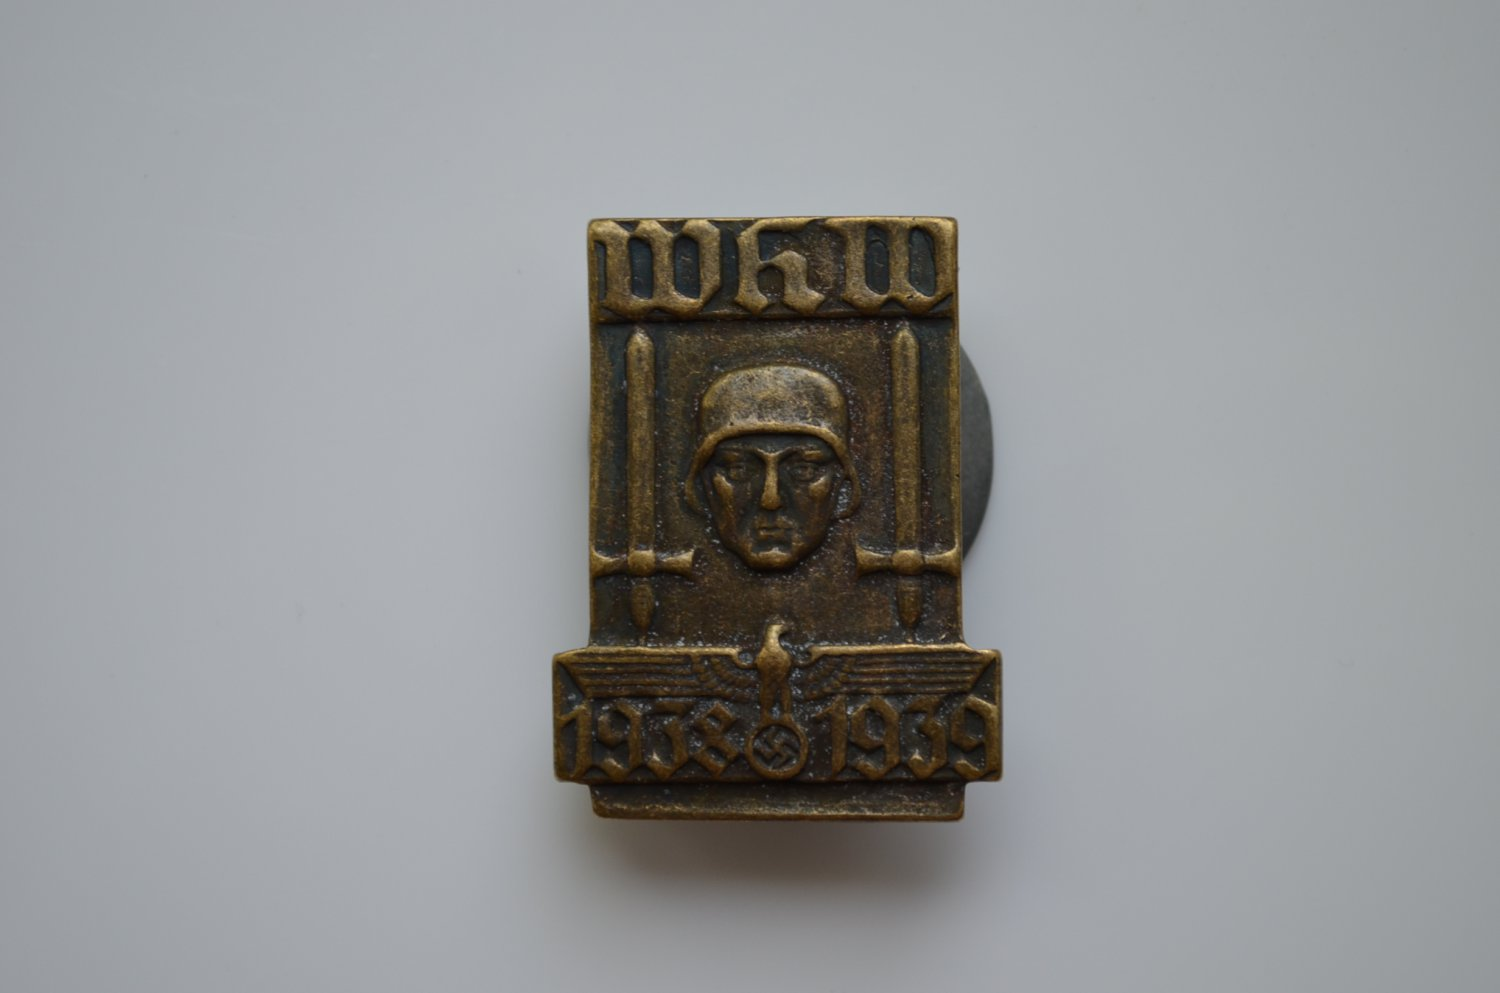 WWII THE GERMAN BADGE WHW 1938 1939